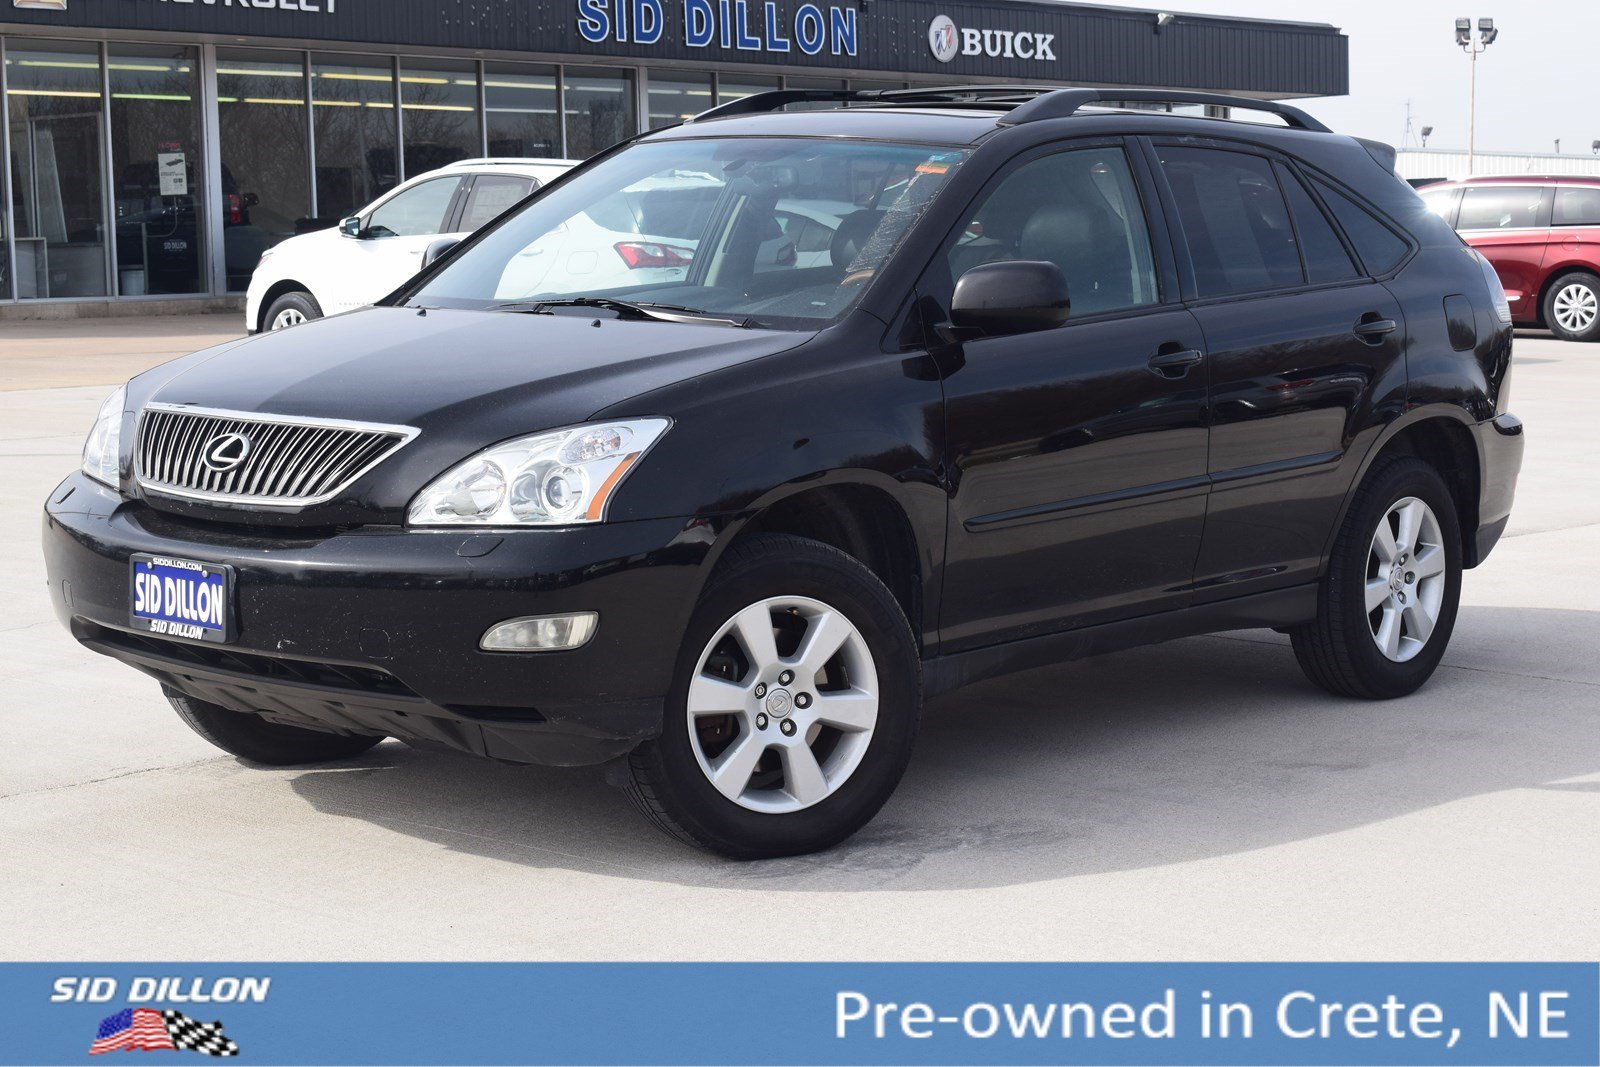 Pre-Owned 2004 Lexus RX 330 4DR AWD